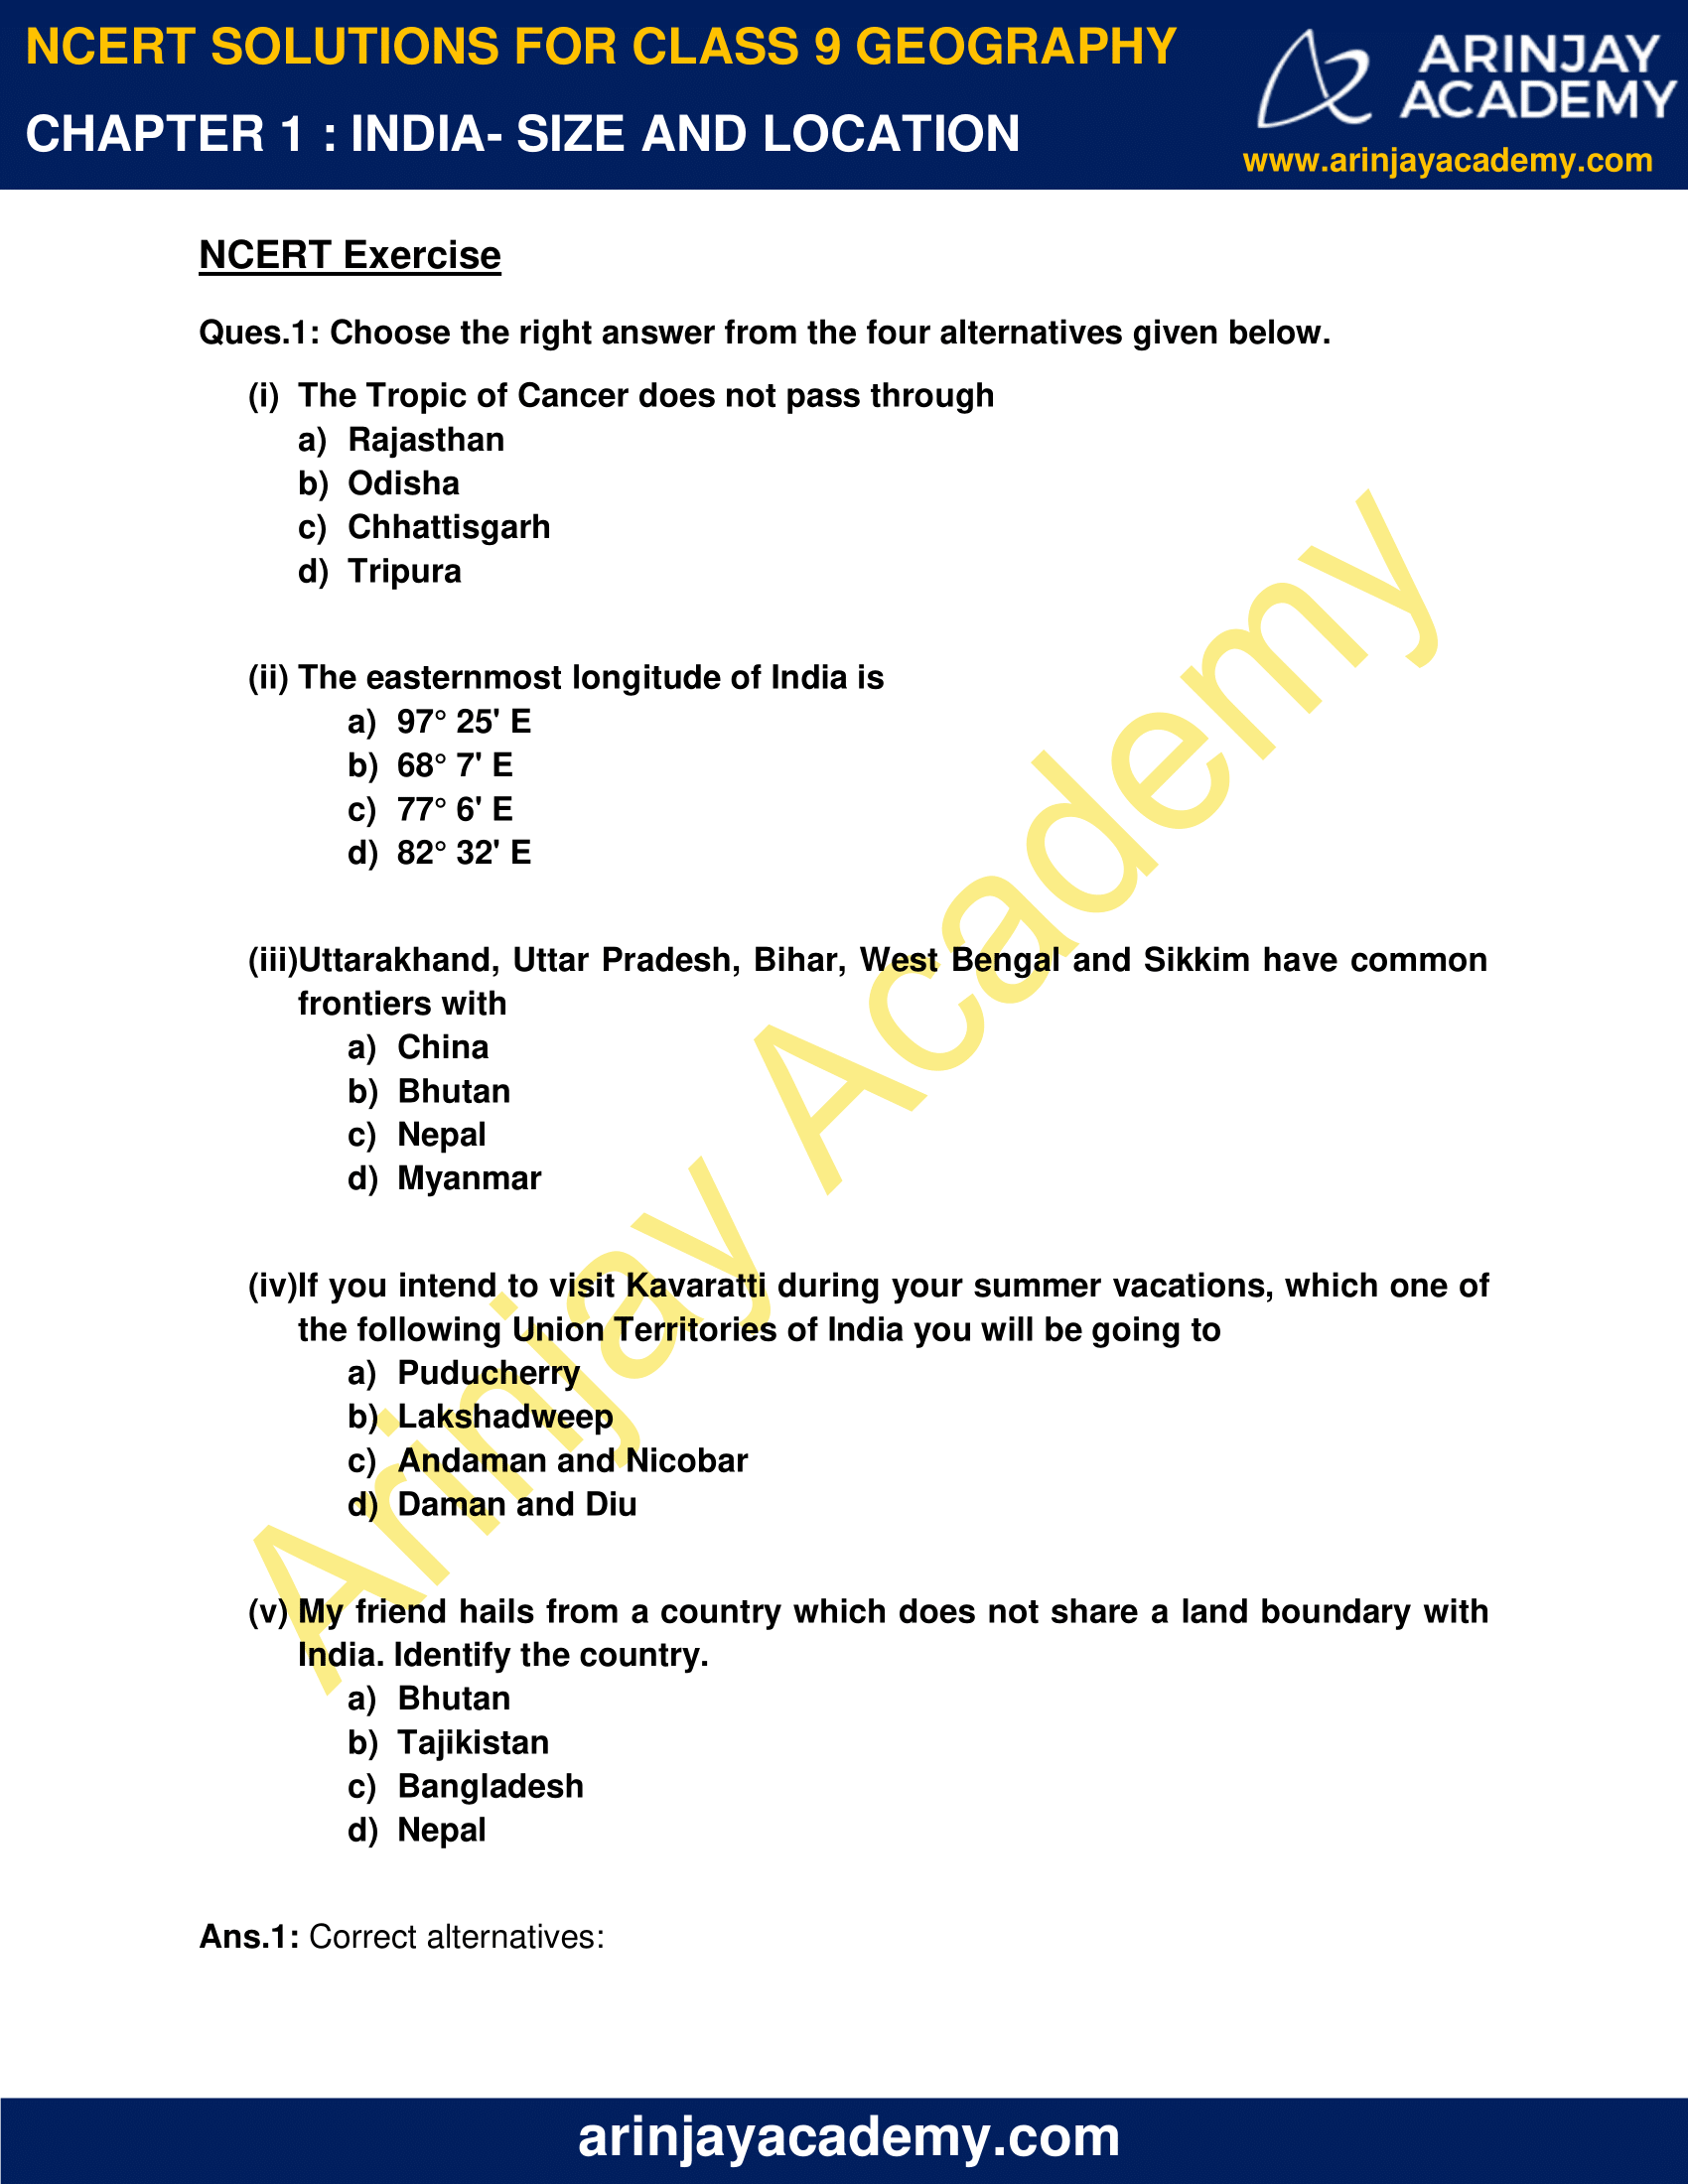 NCERT Solutions for Class 9 Geography Chapter 1 image 1